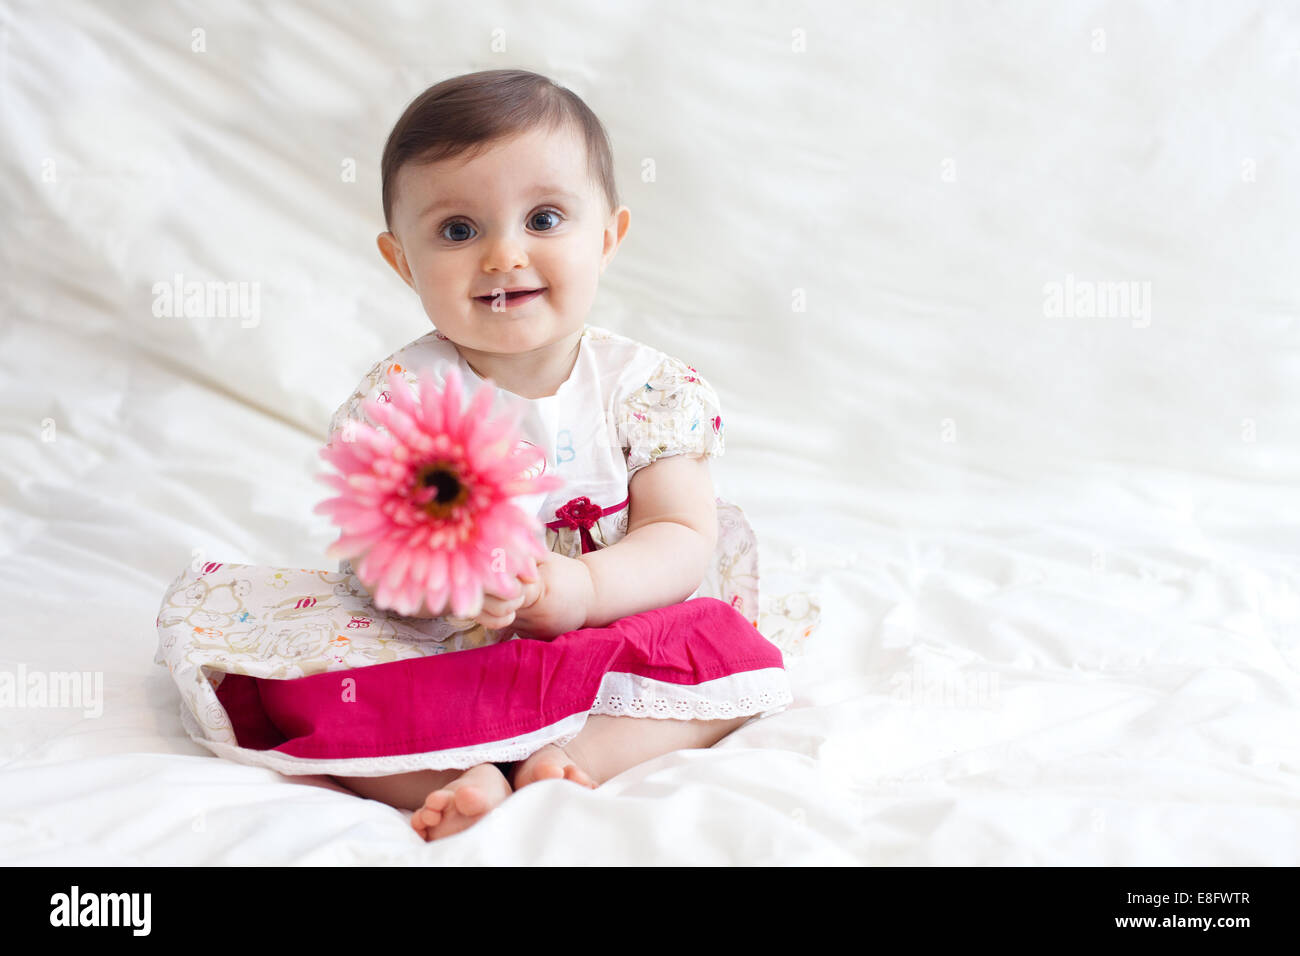 Portrait Of Cute Baby Girl 12 17 Months Playing With Flower Stock